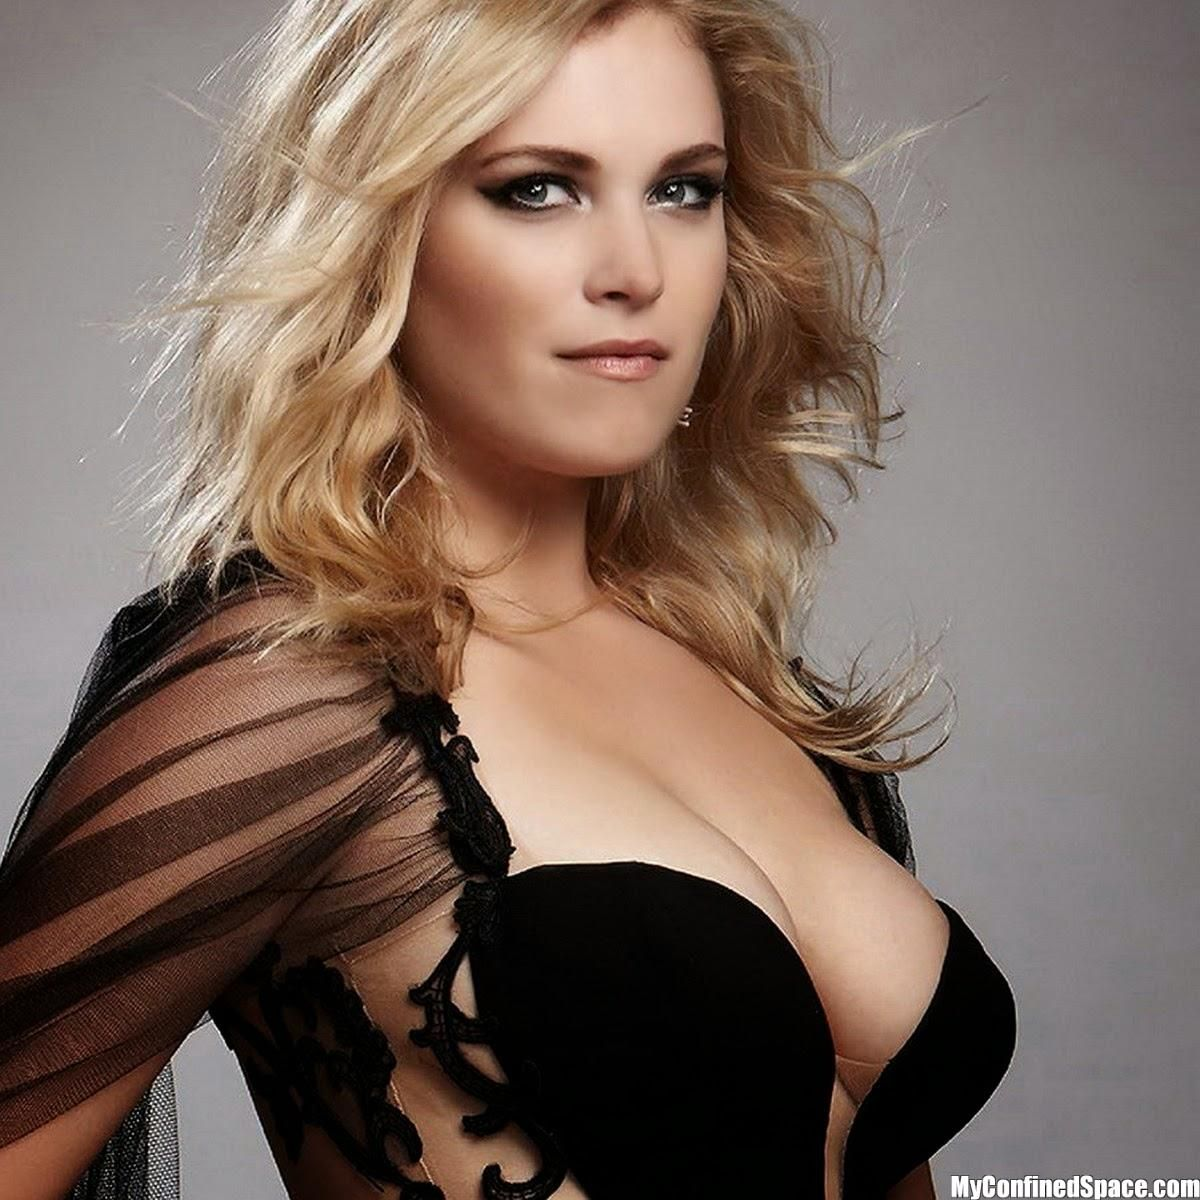 Boobs Eliza Taylor nudes (19 foto and video), Sexy, Sideboobs, Twitter, cleavage 2015